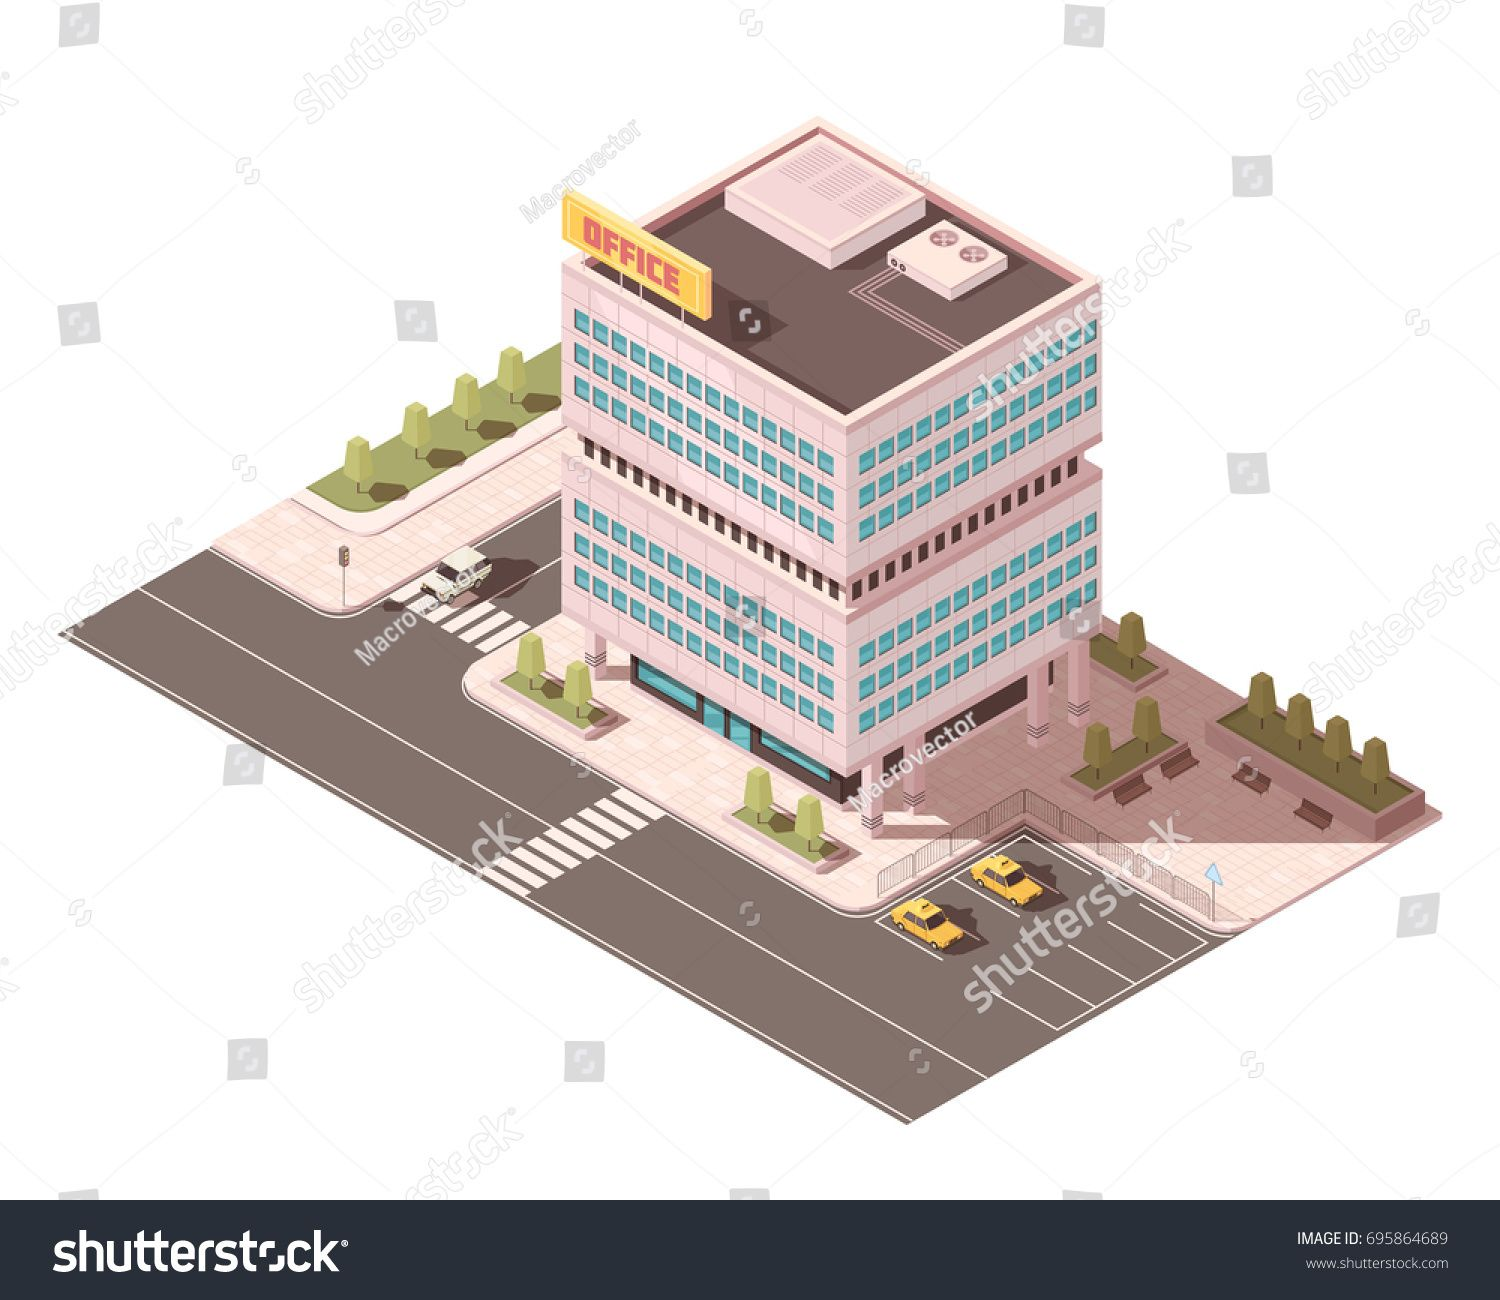 By Macrovector Office Building With Ventilation Equipment On Roof Road Infrastructure And Parking Ventilation Equipment Building Ventilation Roofing Equipment